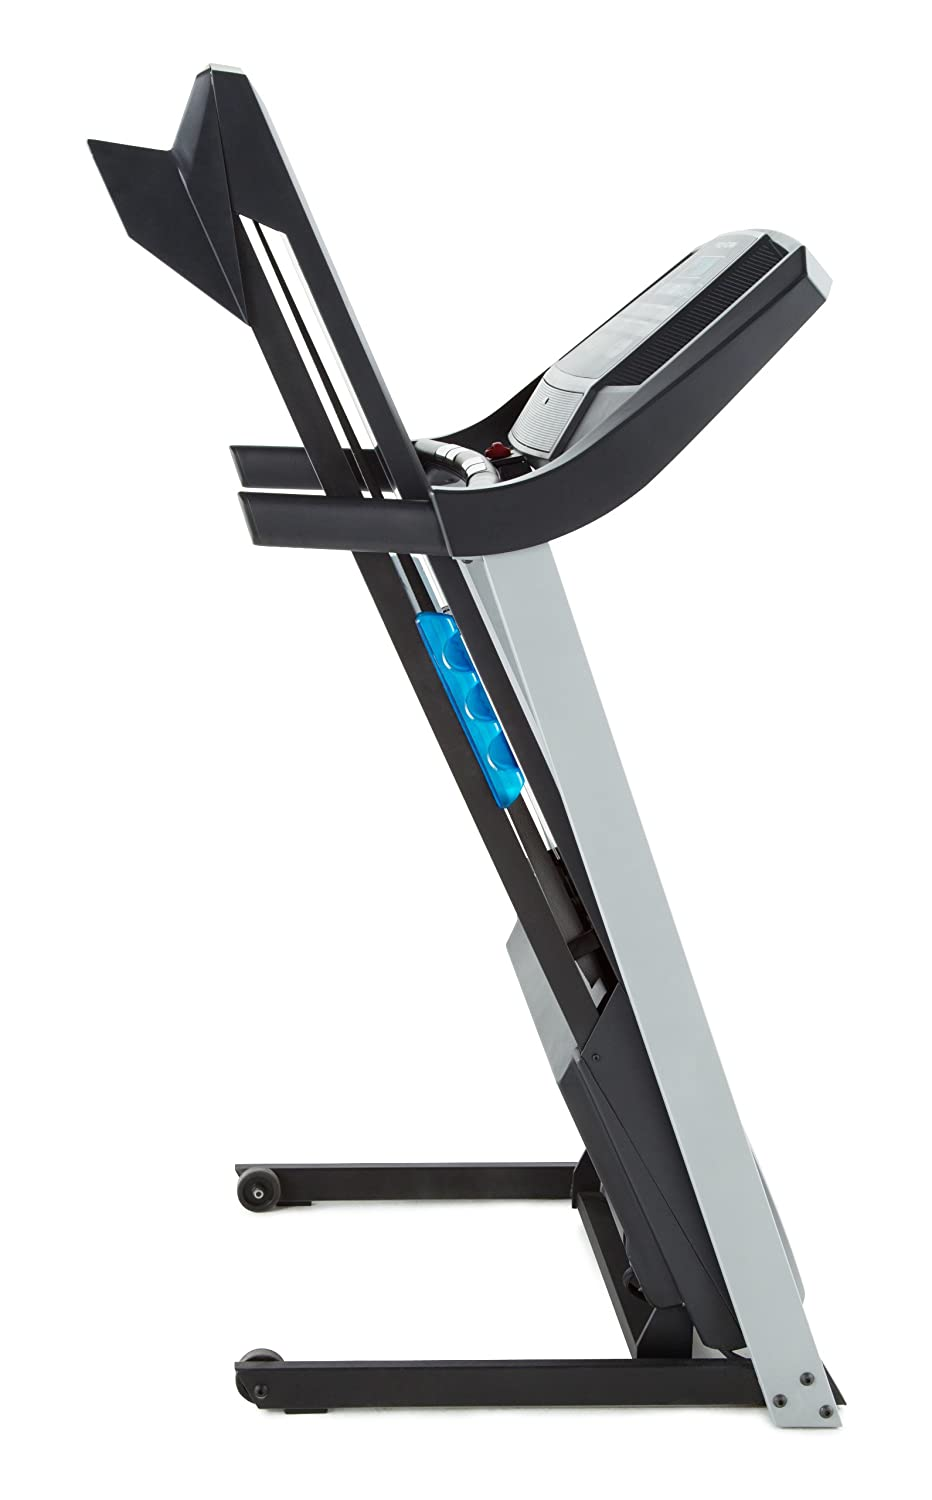 71zVqjhxCCL._SL1500_ amazon com proform 6 0 rt exercise treadmills sports & outdoors Proform 6 0 RT Review at reclaimingppi.co